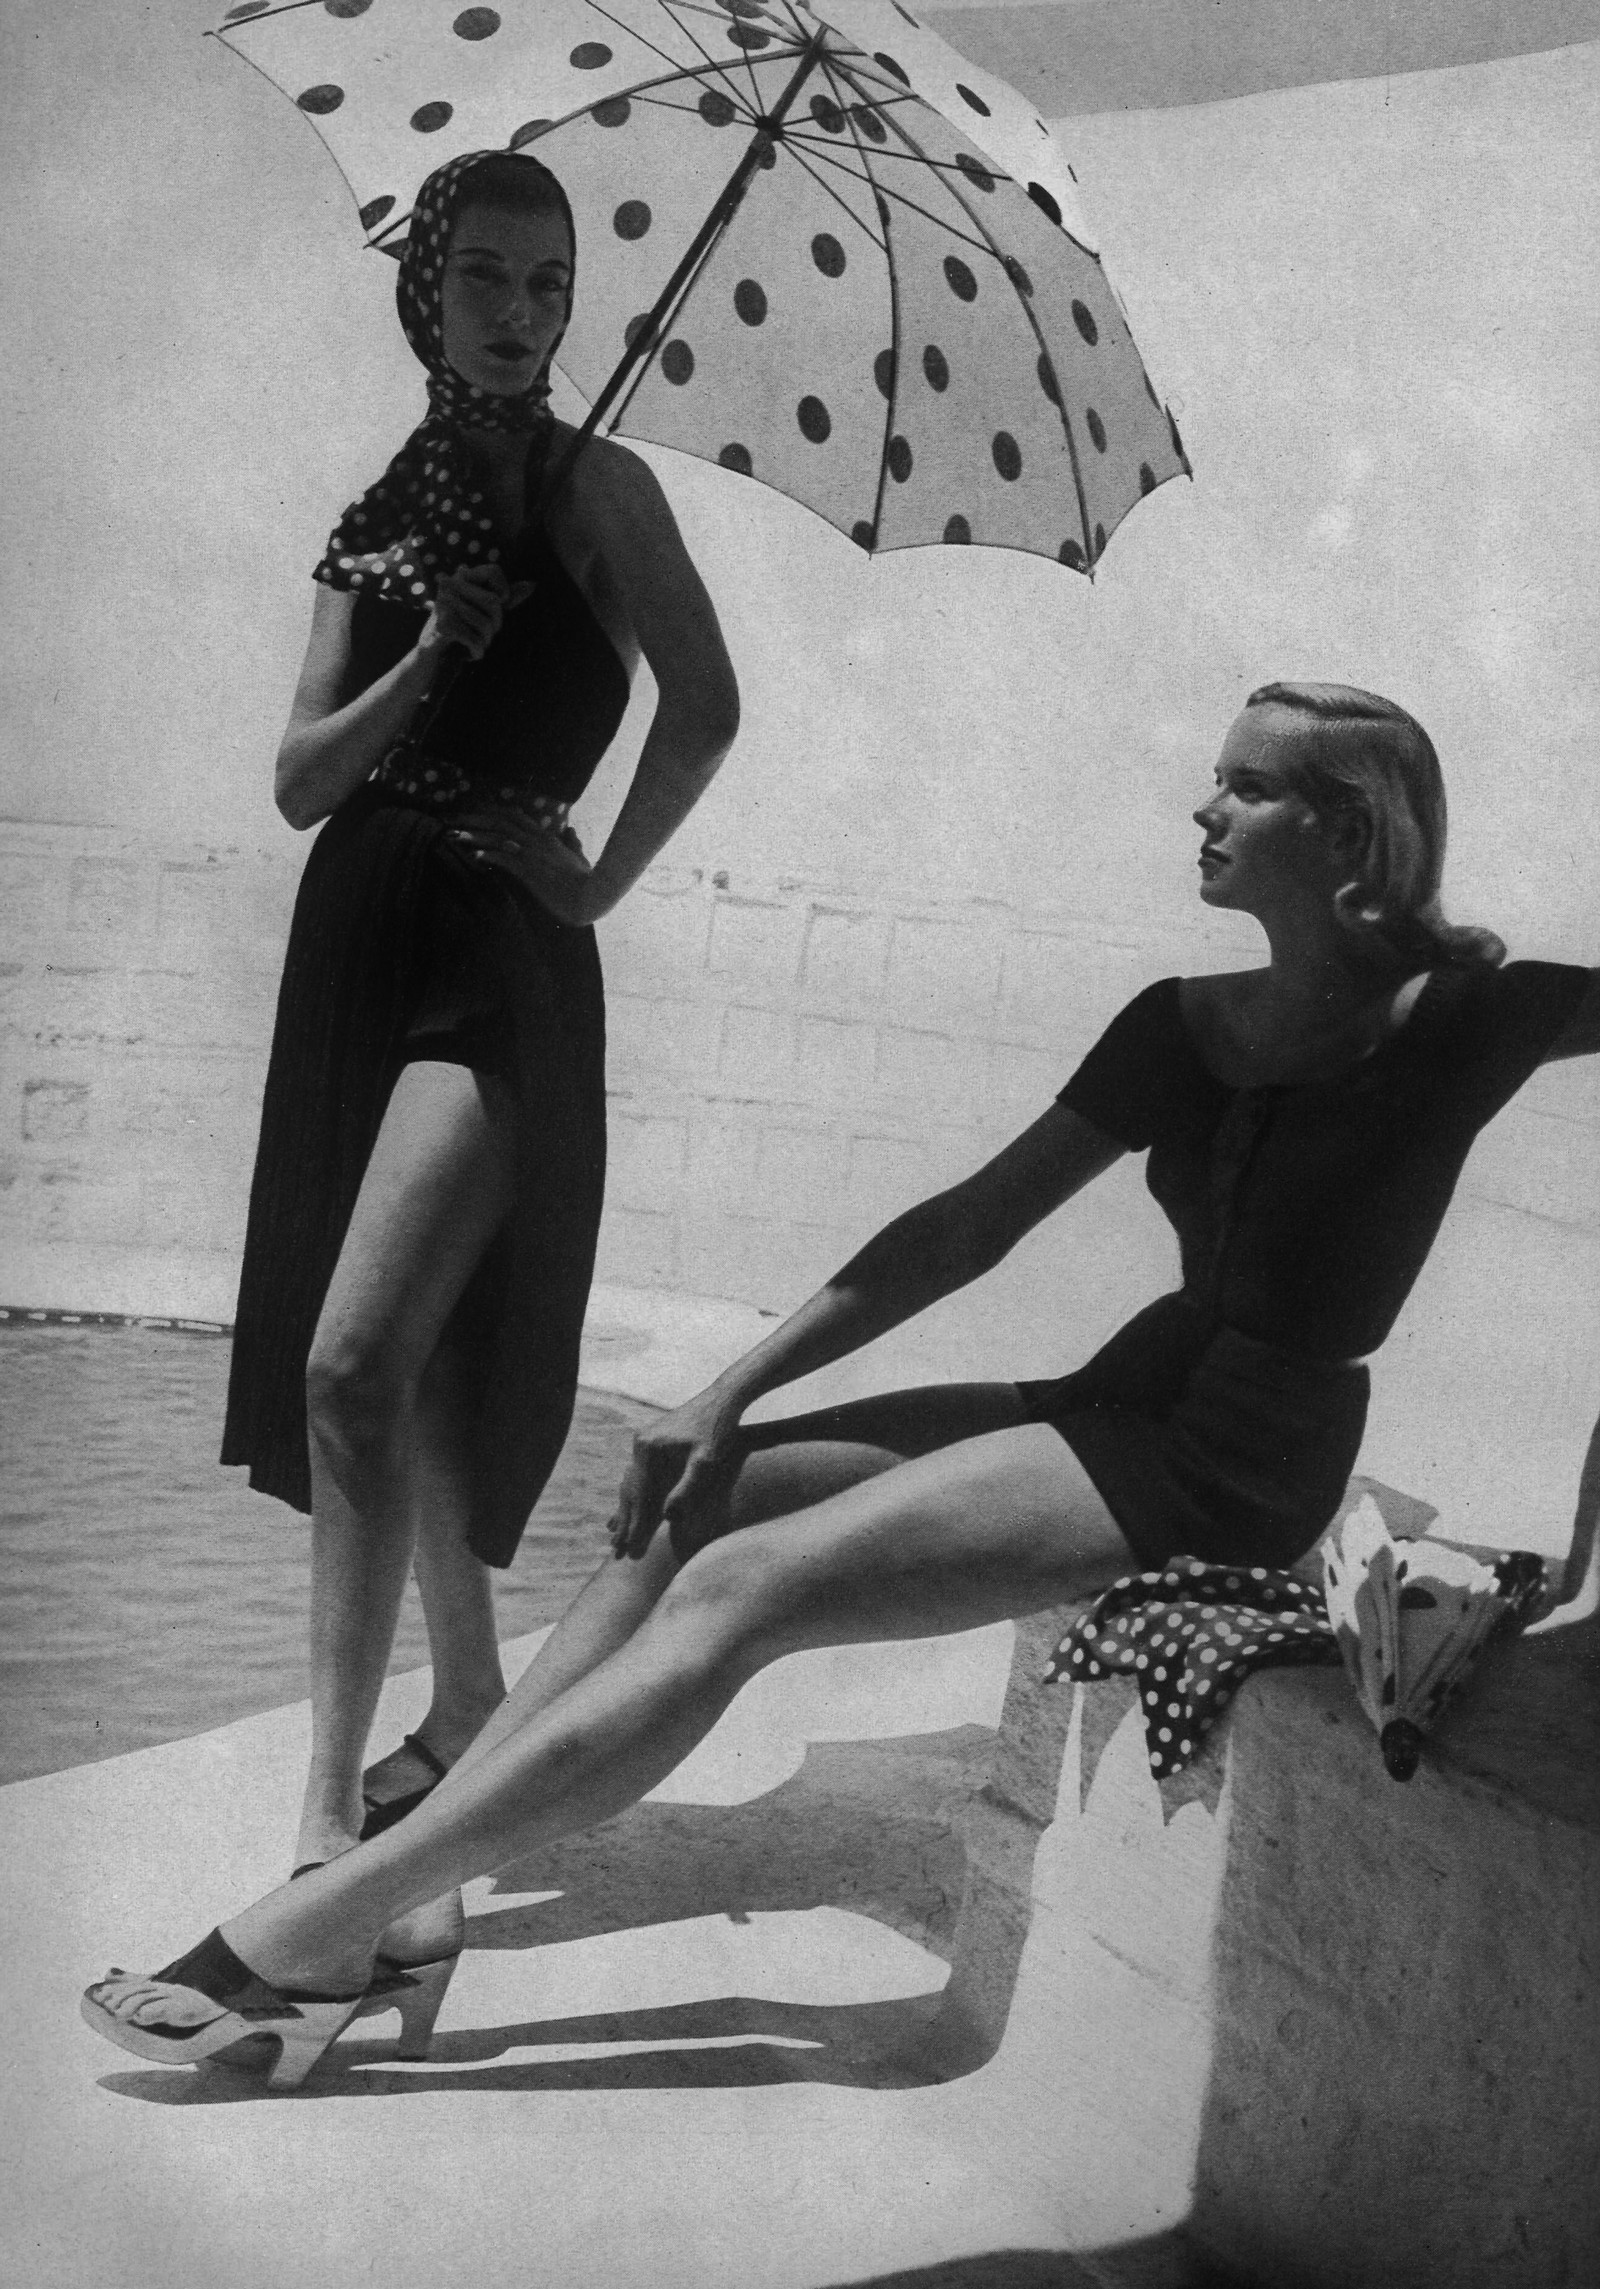 Photo by toni frissell for harpers bazaar 1952